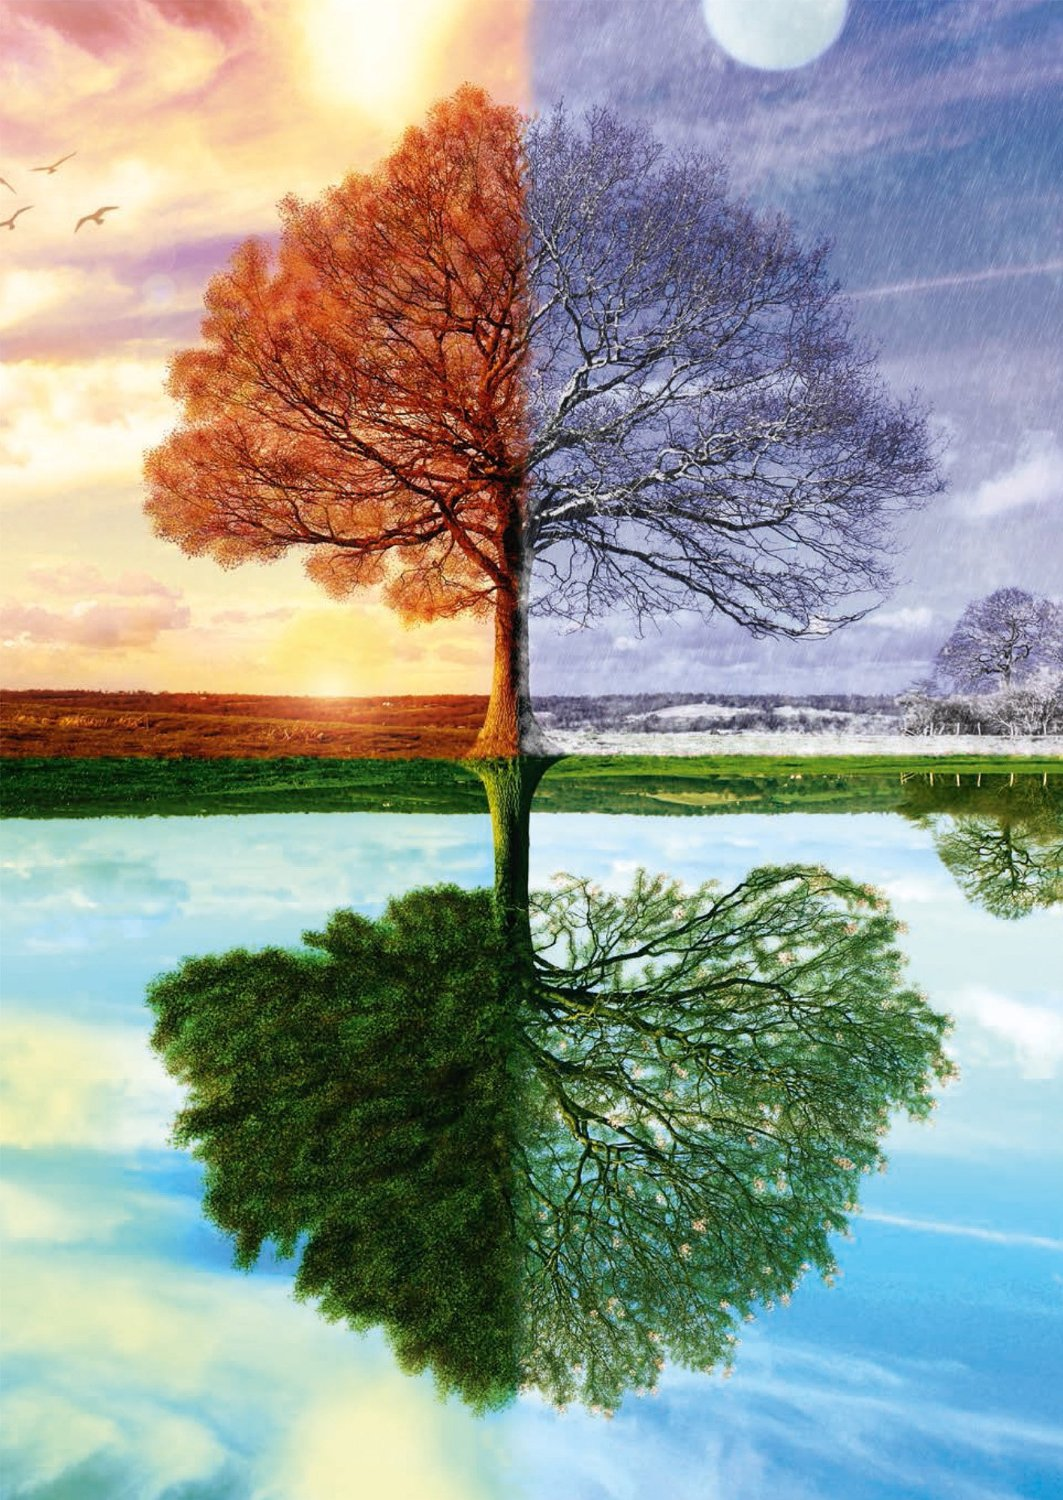 The Impact of Robert Frost